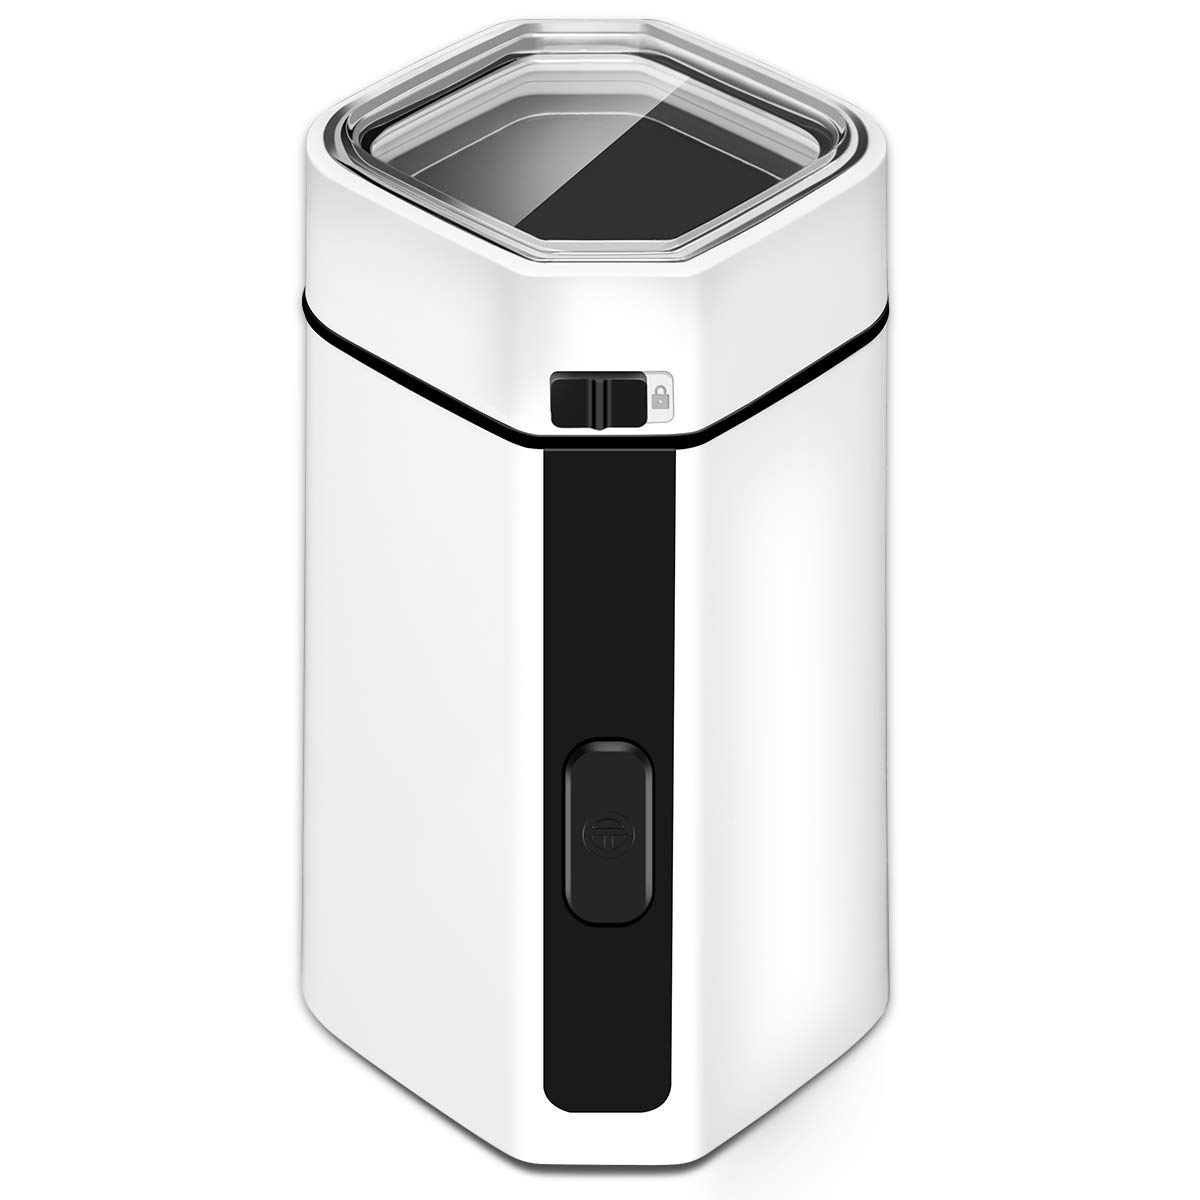 Coffee Grinder Electric, CUSIBOX Multifunctional Stainless Steel Blade Coffee Grinder Fast Grinding Coffee Beans, Nuts, Grains, Spices (Sliver) (White)